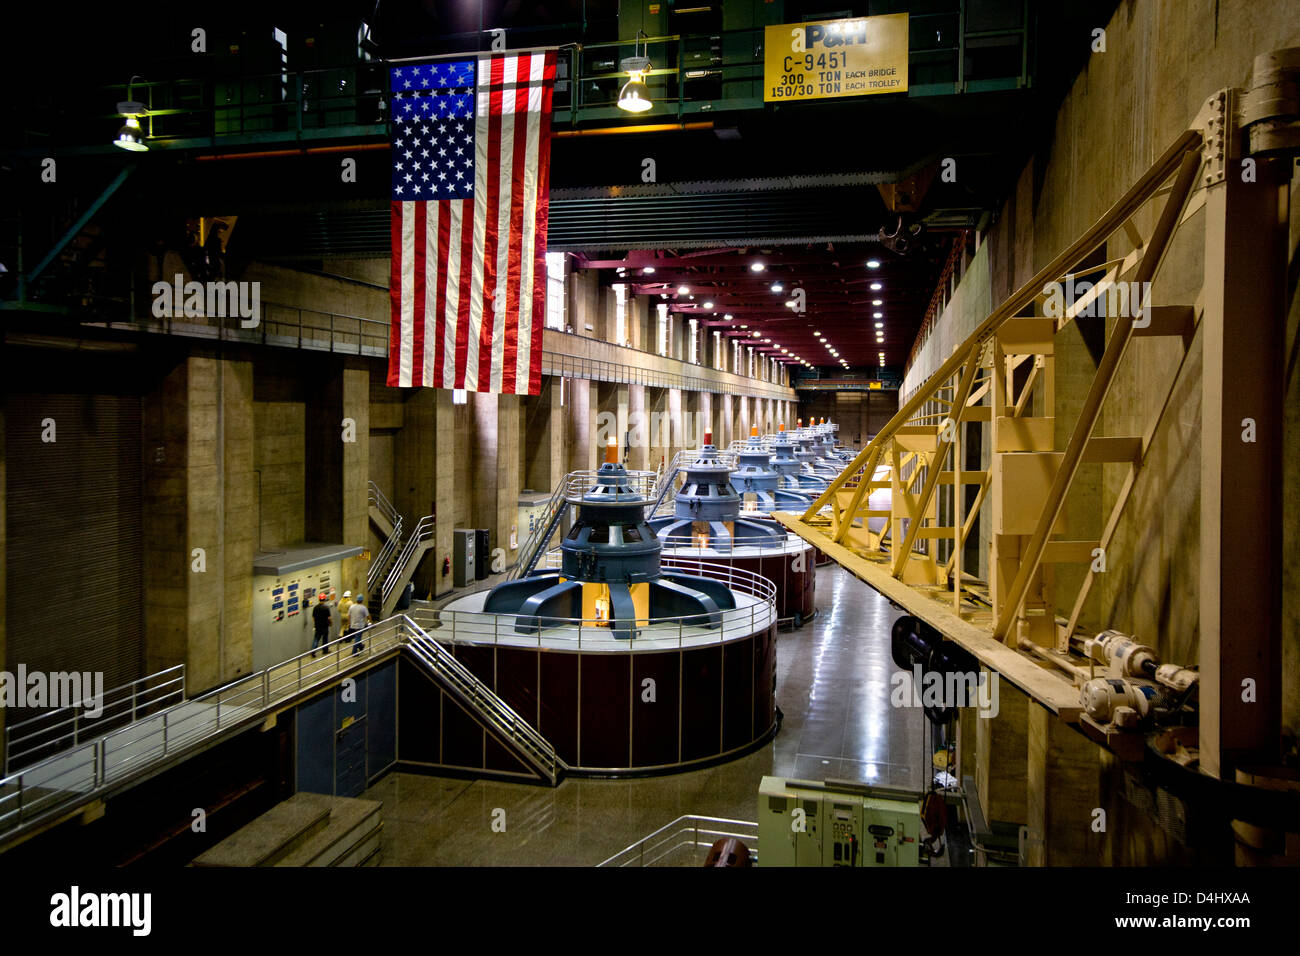 An American flag decorates one of the hydroelectric power plants at Hoover Dam on the Colorado River Stock Photo